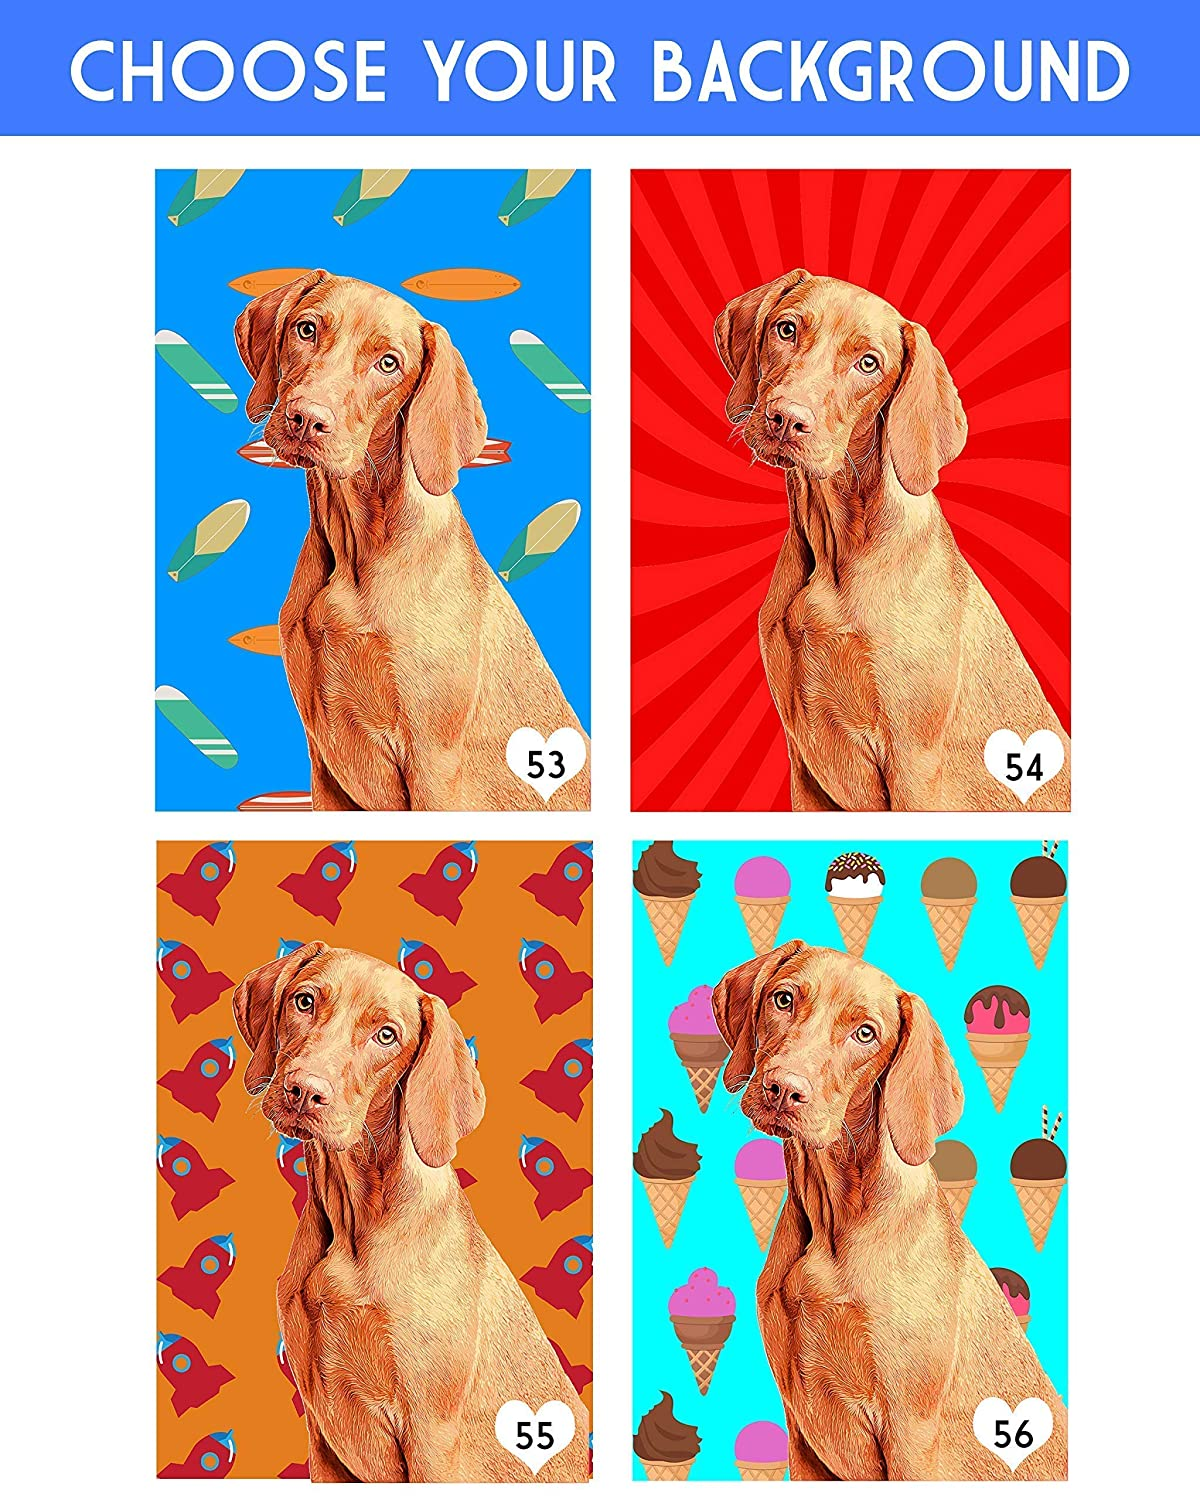 Custom Pet Portrait for Dog Dad Dog Mom Gifts Customized Pet Portrait Dog Paintings Office Decor Wall Art for Animal Lovers Wrapped Canvas Pop Art Print of YOUR Fur Baby